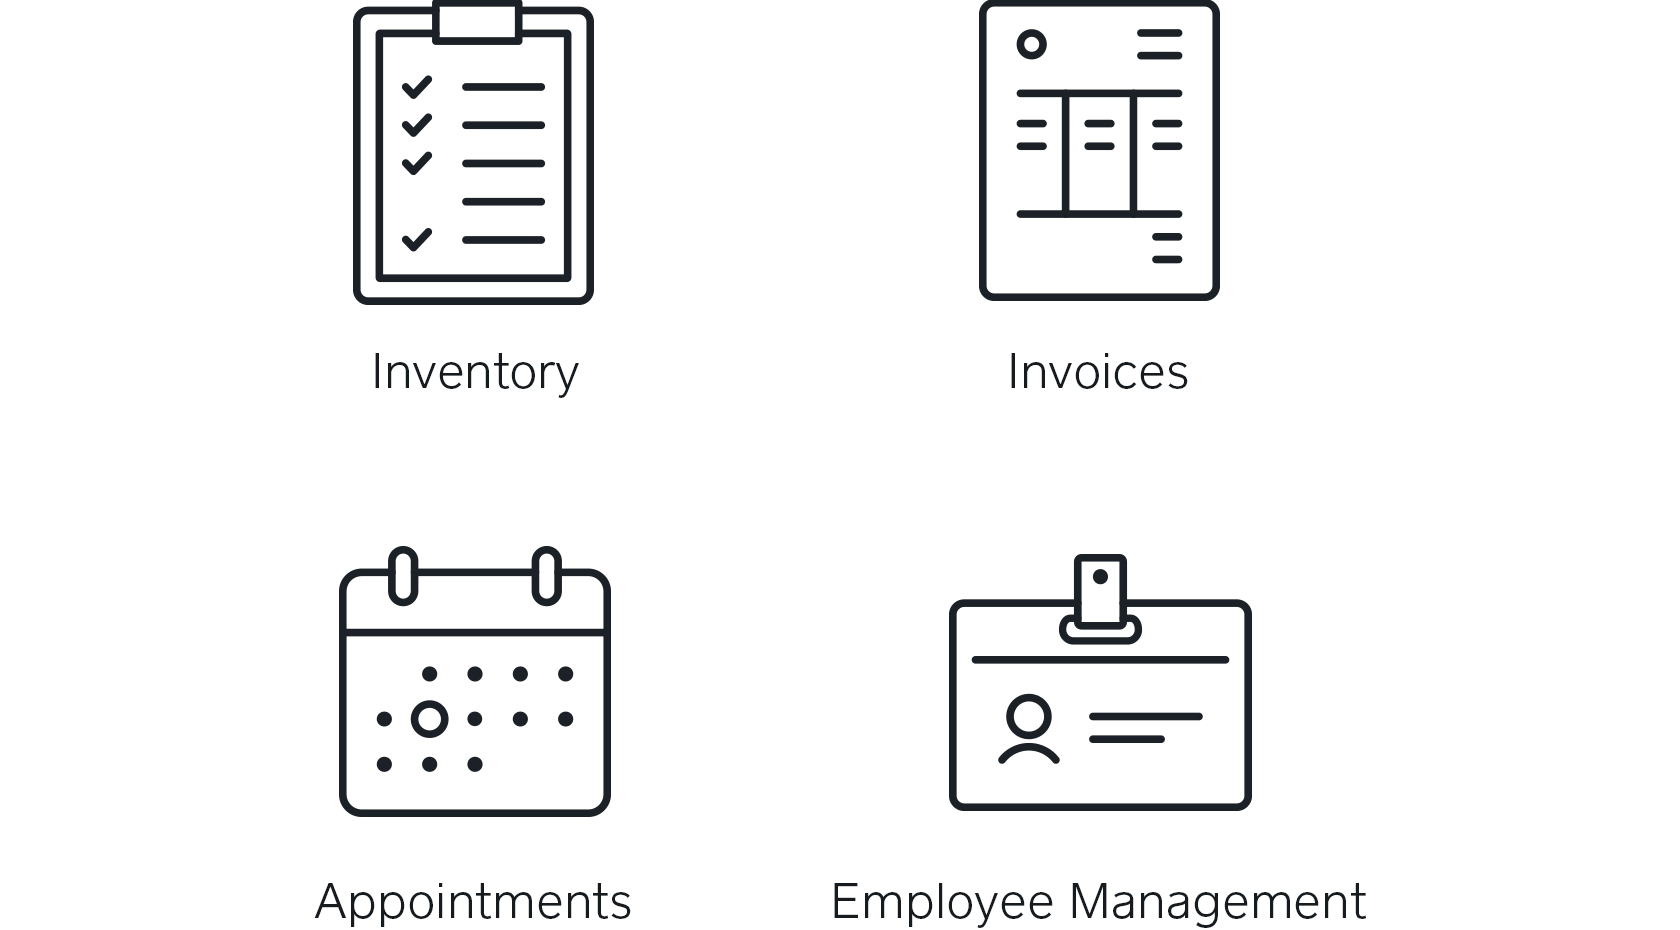 Icons for Square Inventory, Invoices, Appointments, and Team Management